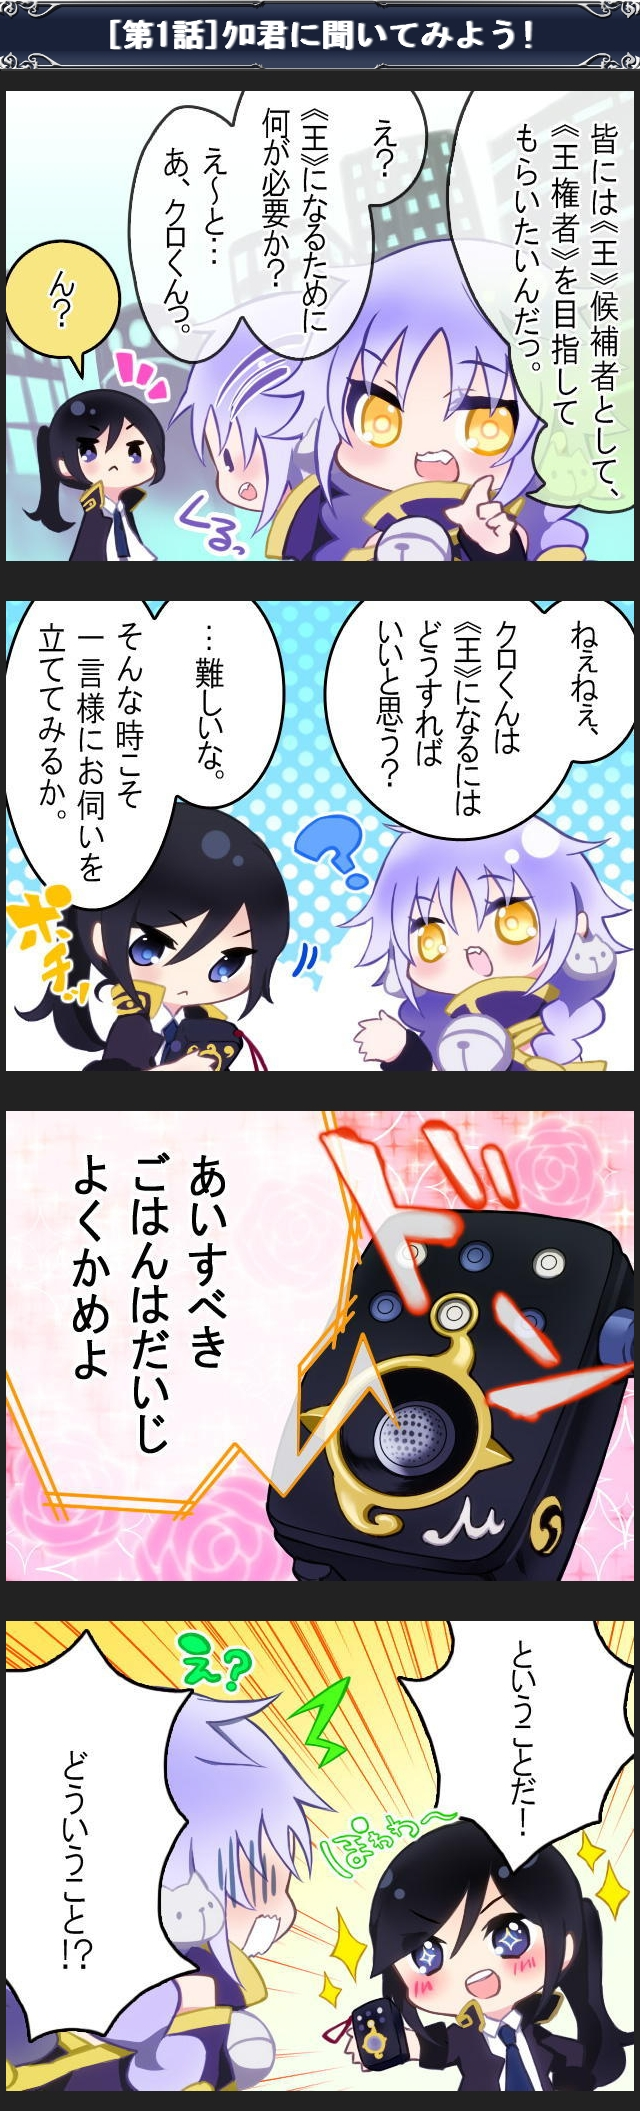 Tags: Anime, GoHands, K Project, Yatogami Kuroh, 4koma, Translation Request, Official Art, Comic, Scan